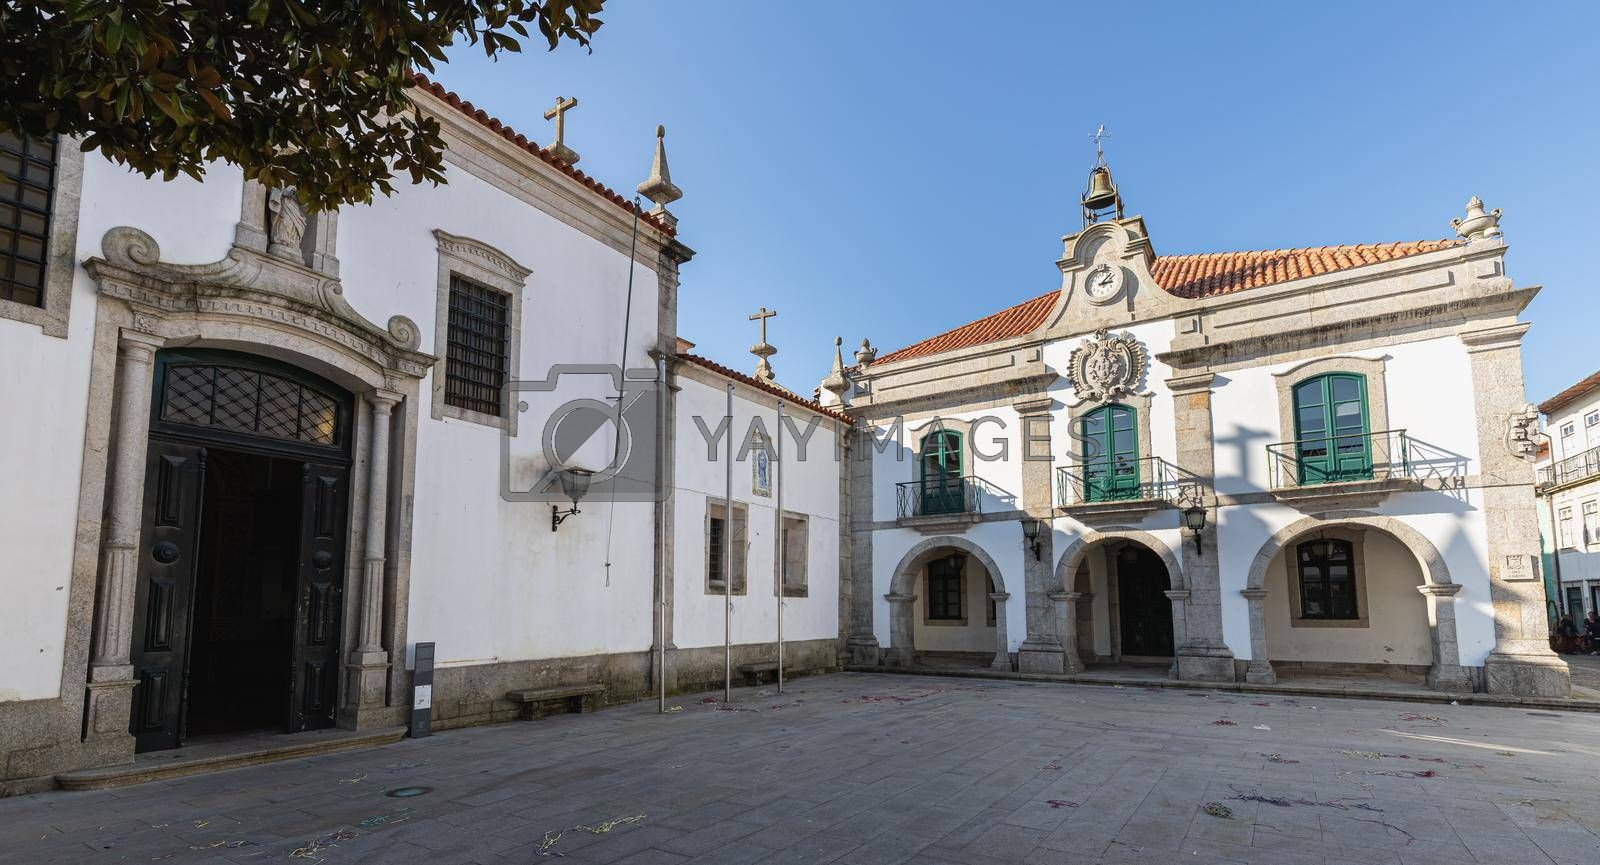 Esposende, Portugal - February 21, 2020: Architectural detail of the Church of Mercy (Santa Casa Misericordia de Fao) in the historic city center on a winter day